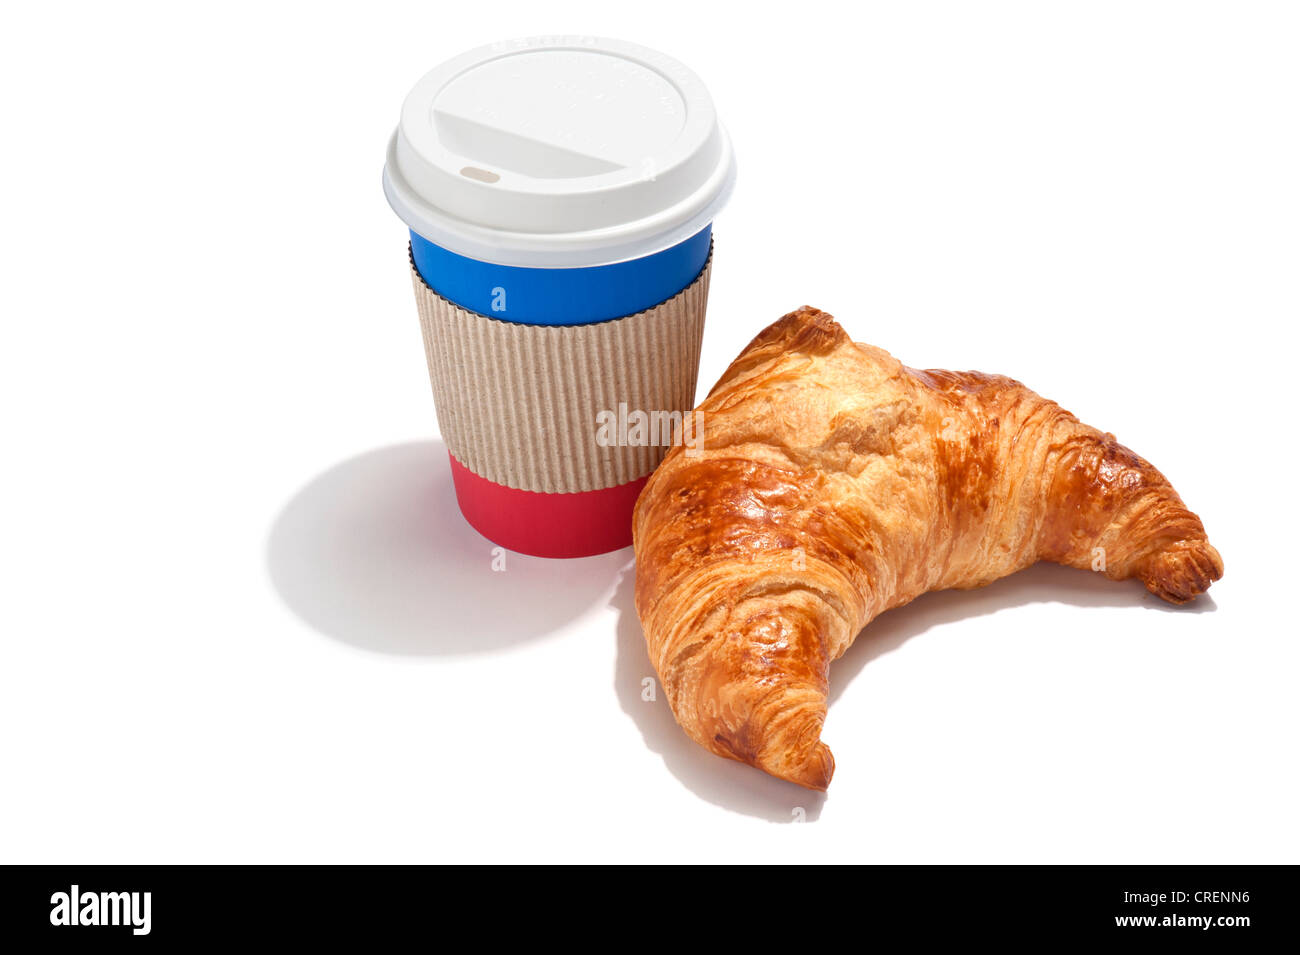 A croissant and a takeaway drink cup - Stock Image